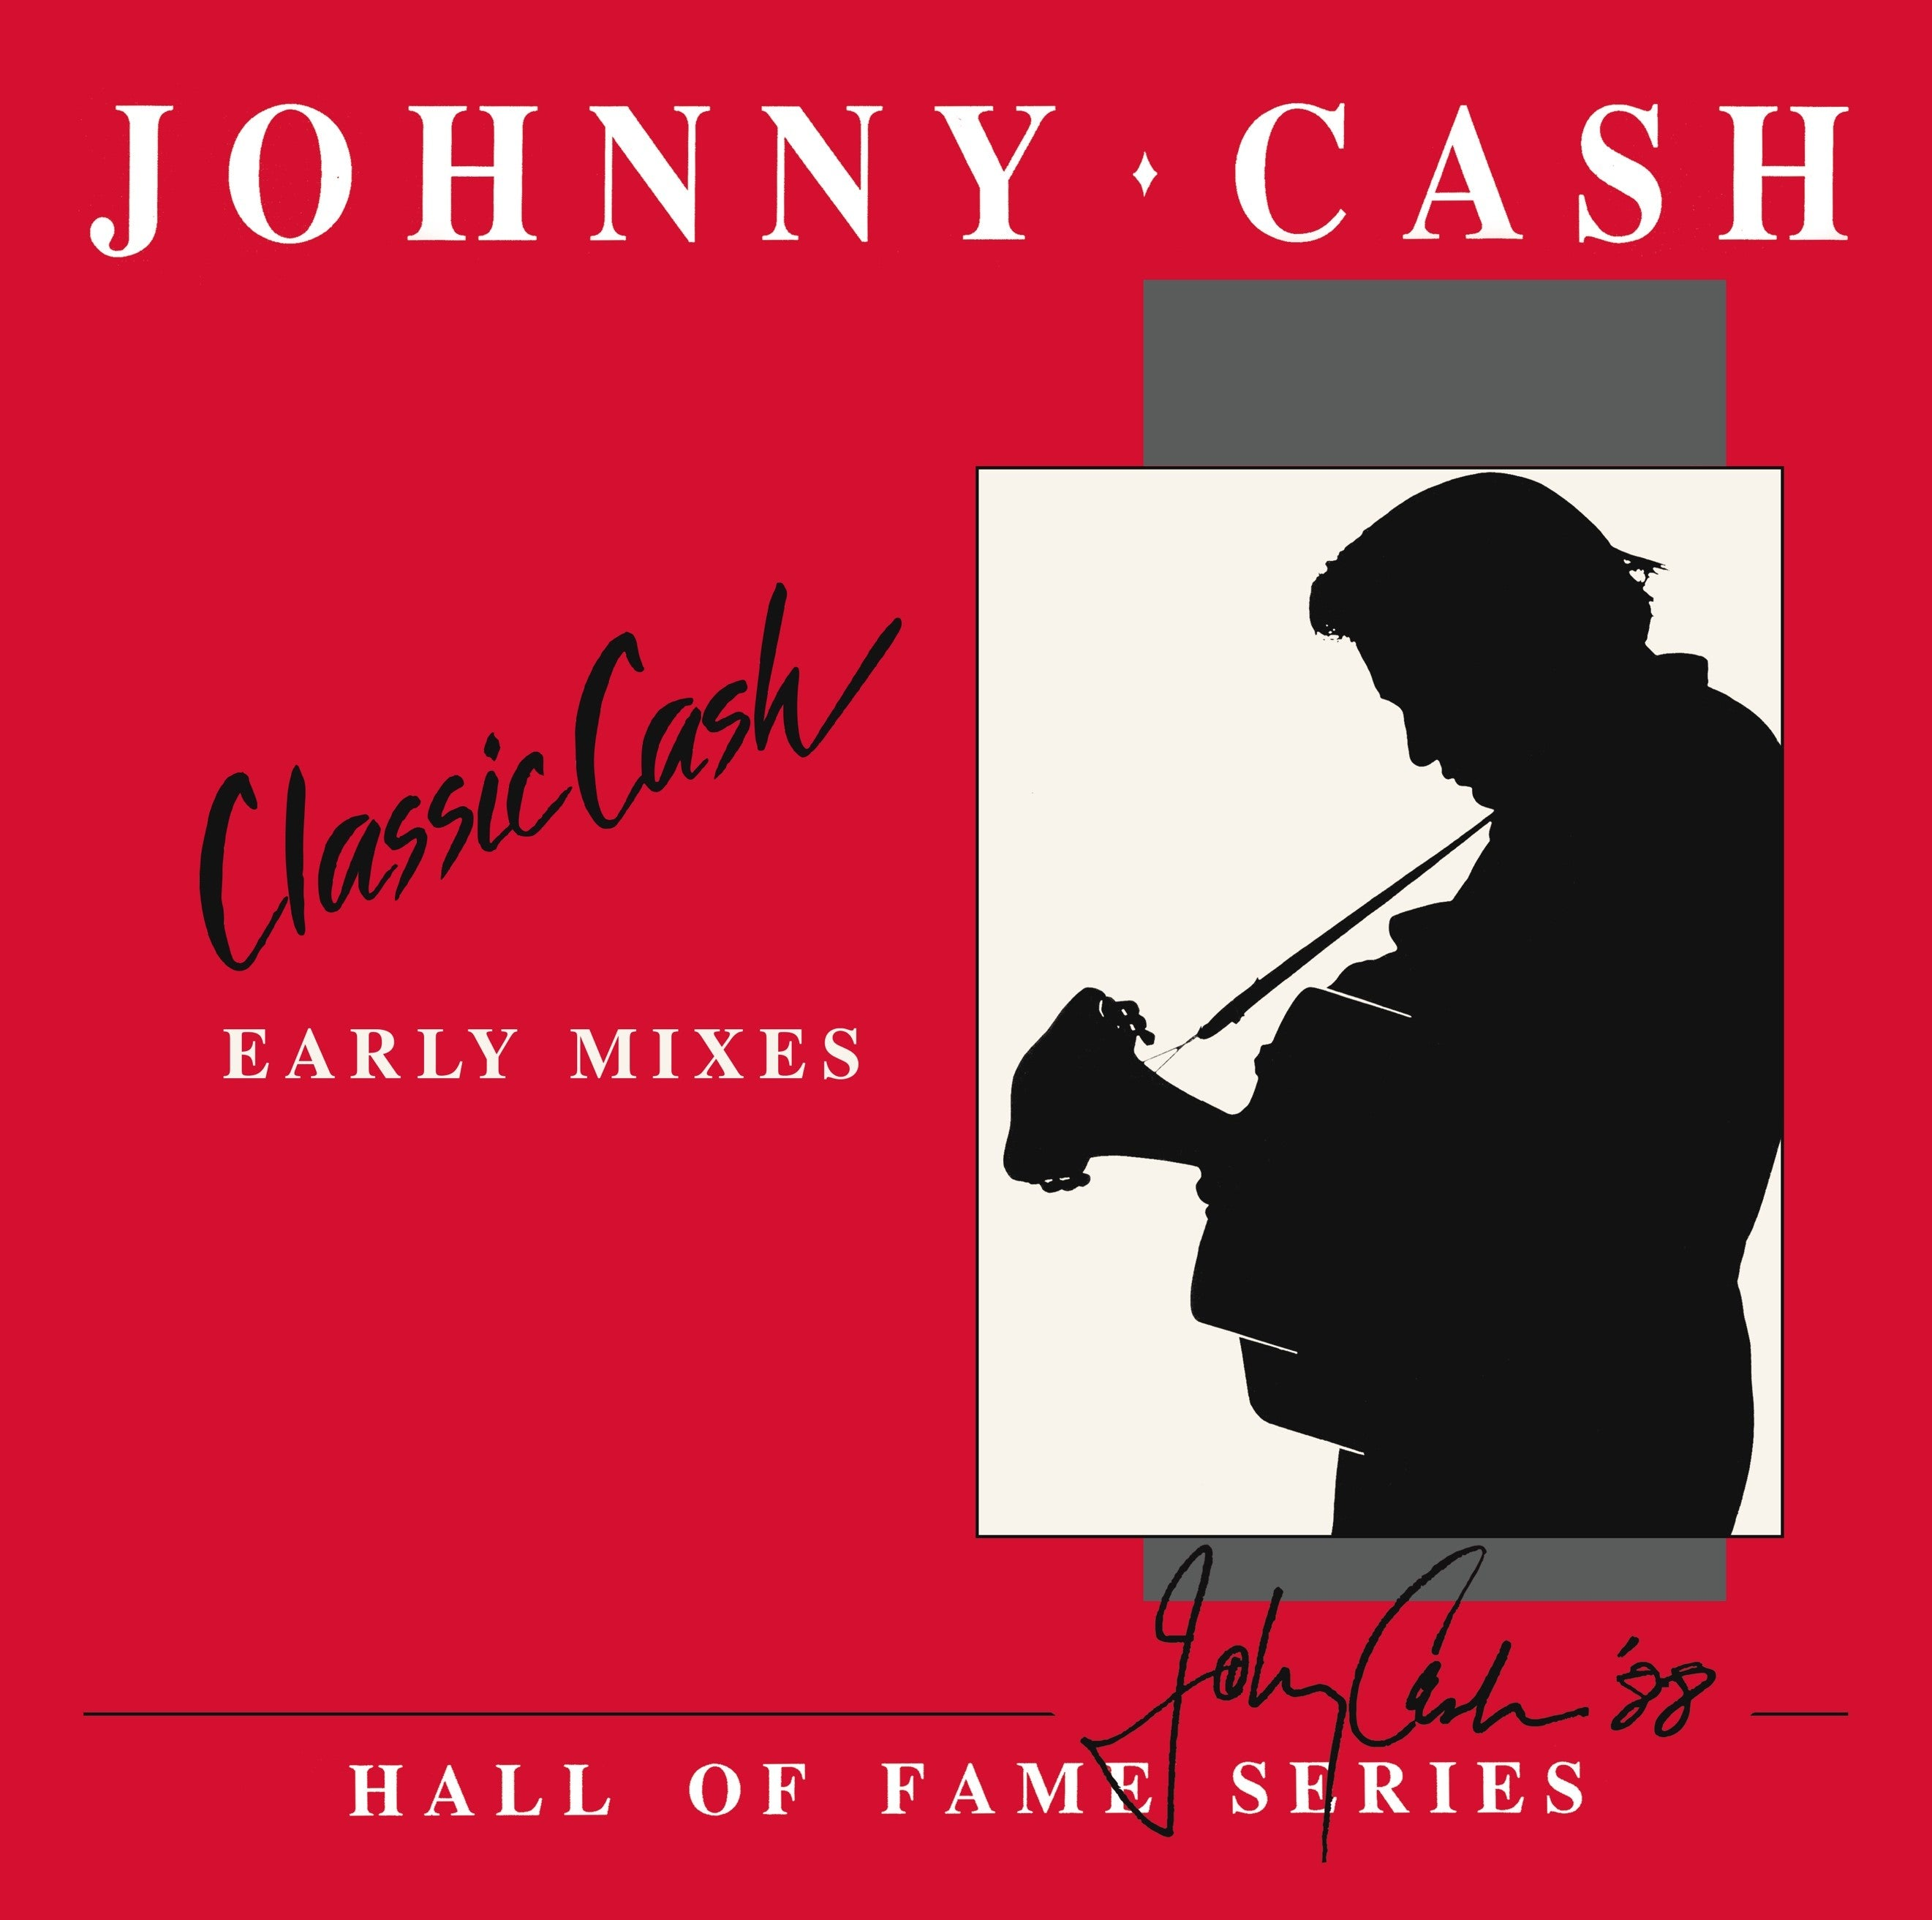 Johnny Cash - Classic Cash: Early Mixes (RSD 2020 Drop Three) 2LP 180g Vinyl Record Album